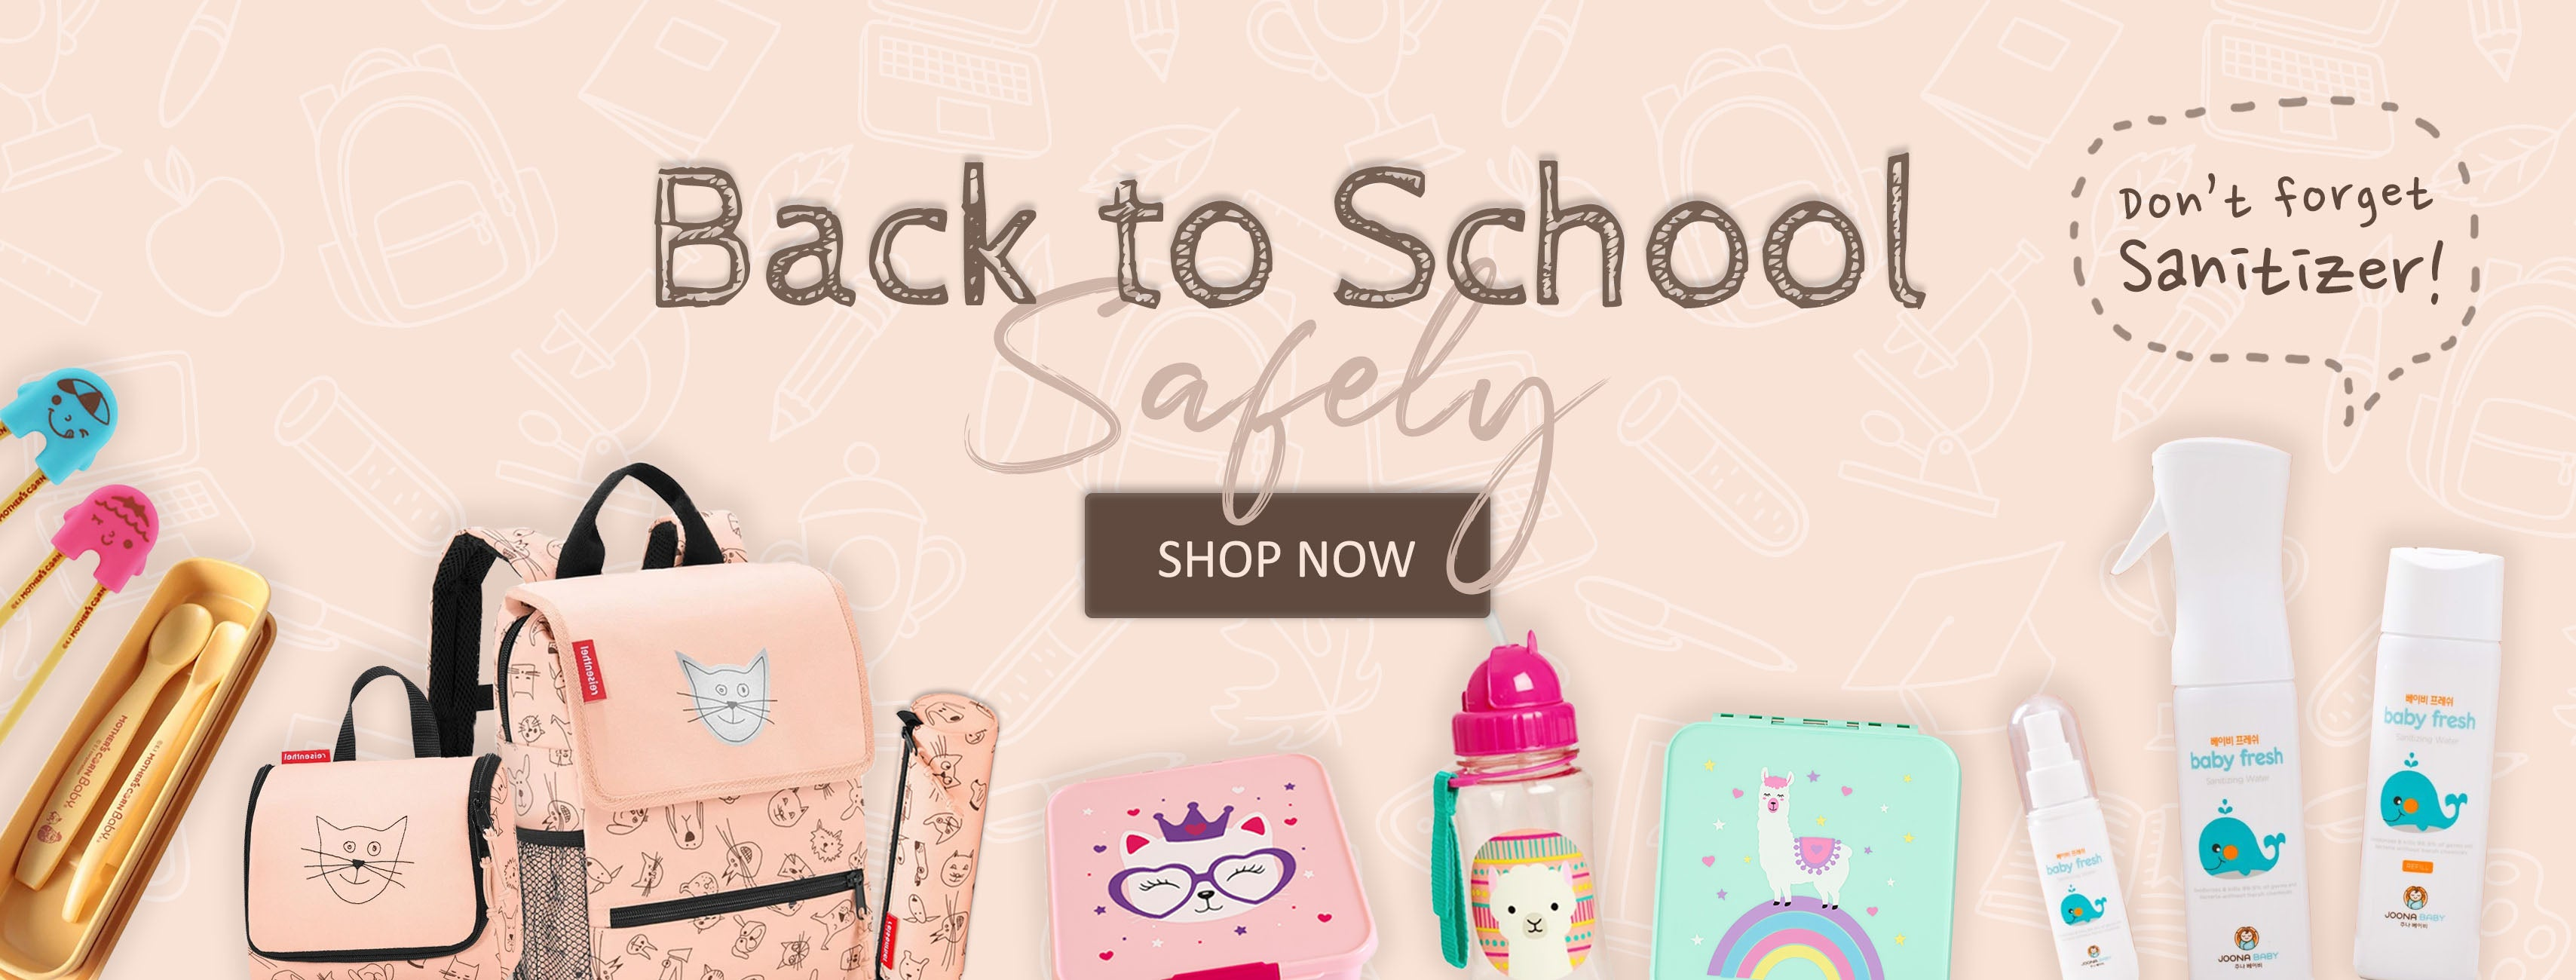 Back to school safely 2020